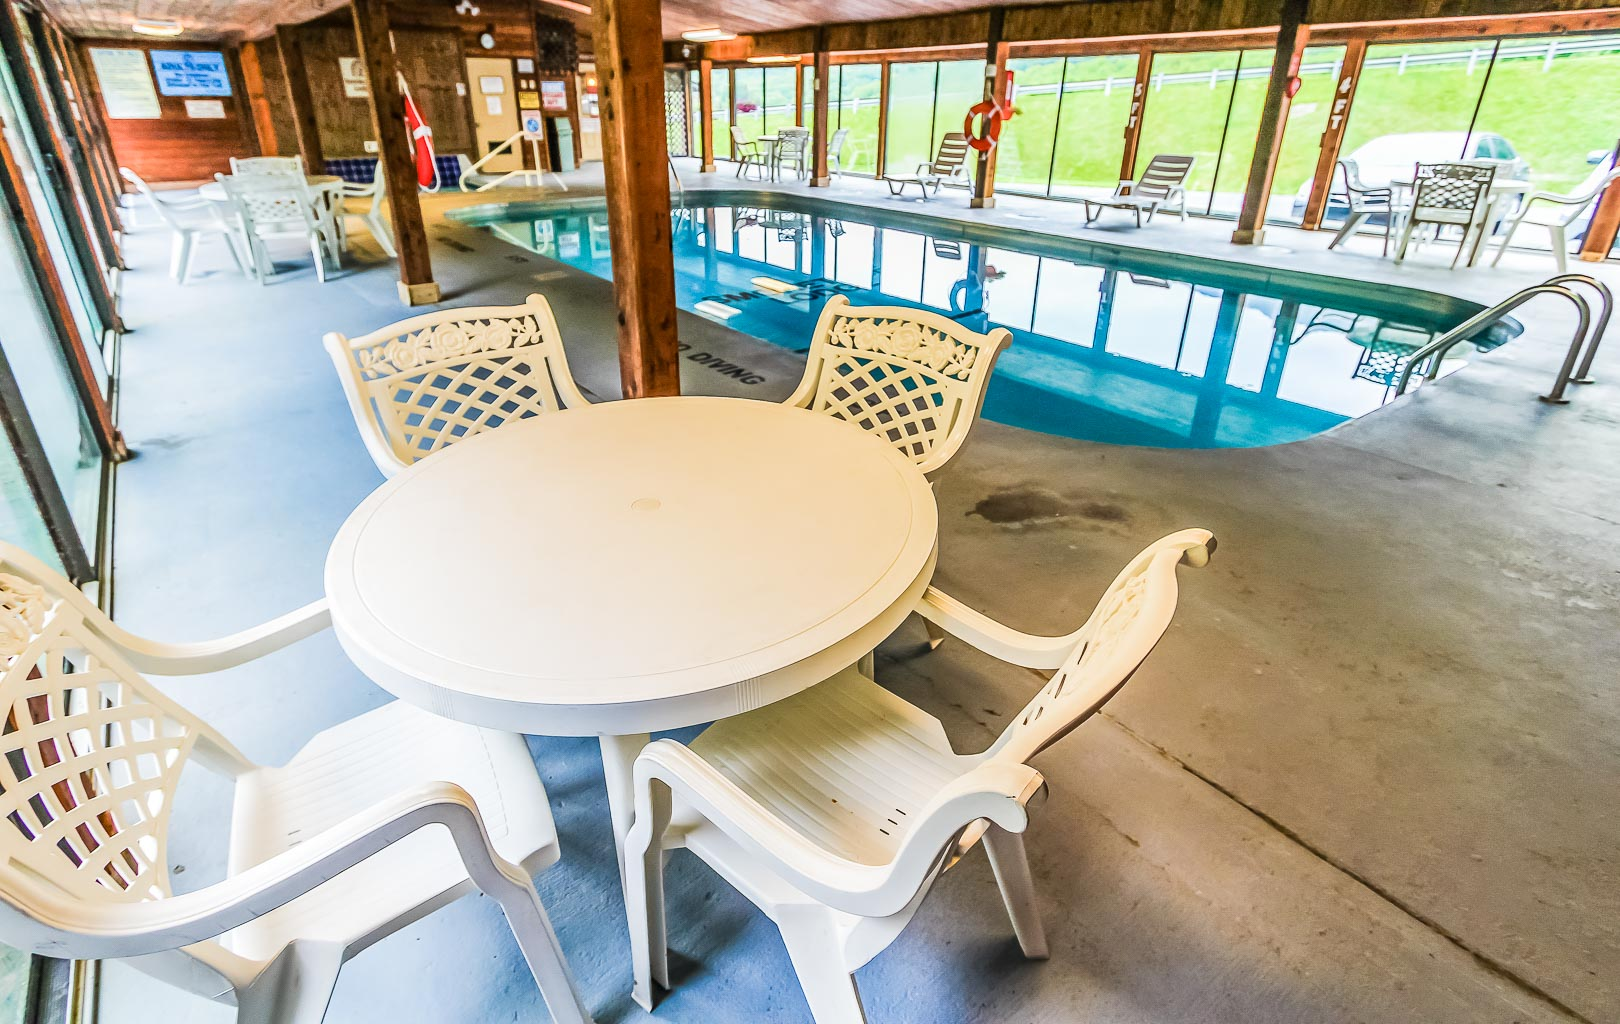 A relaxing indooe Jacuzzi and swimming pool at VRI's Smoketree Lodge in North Carolina.